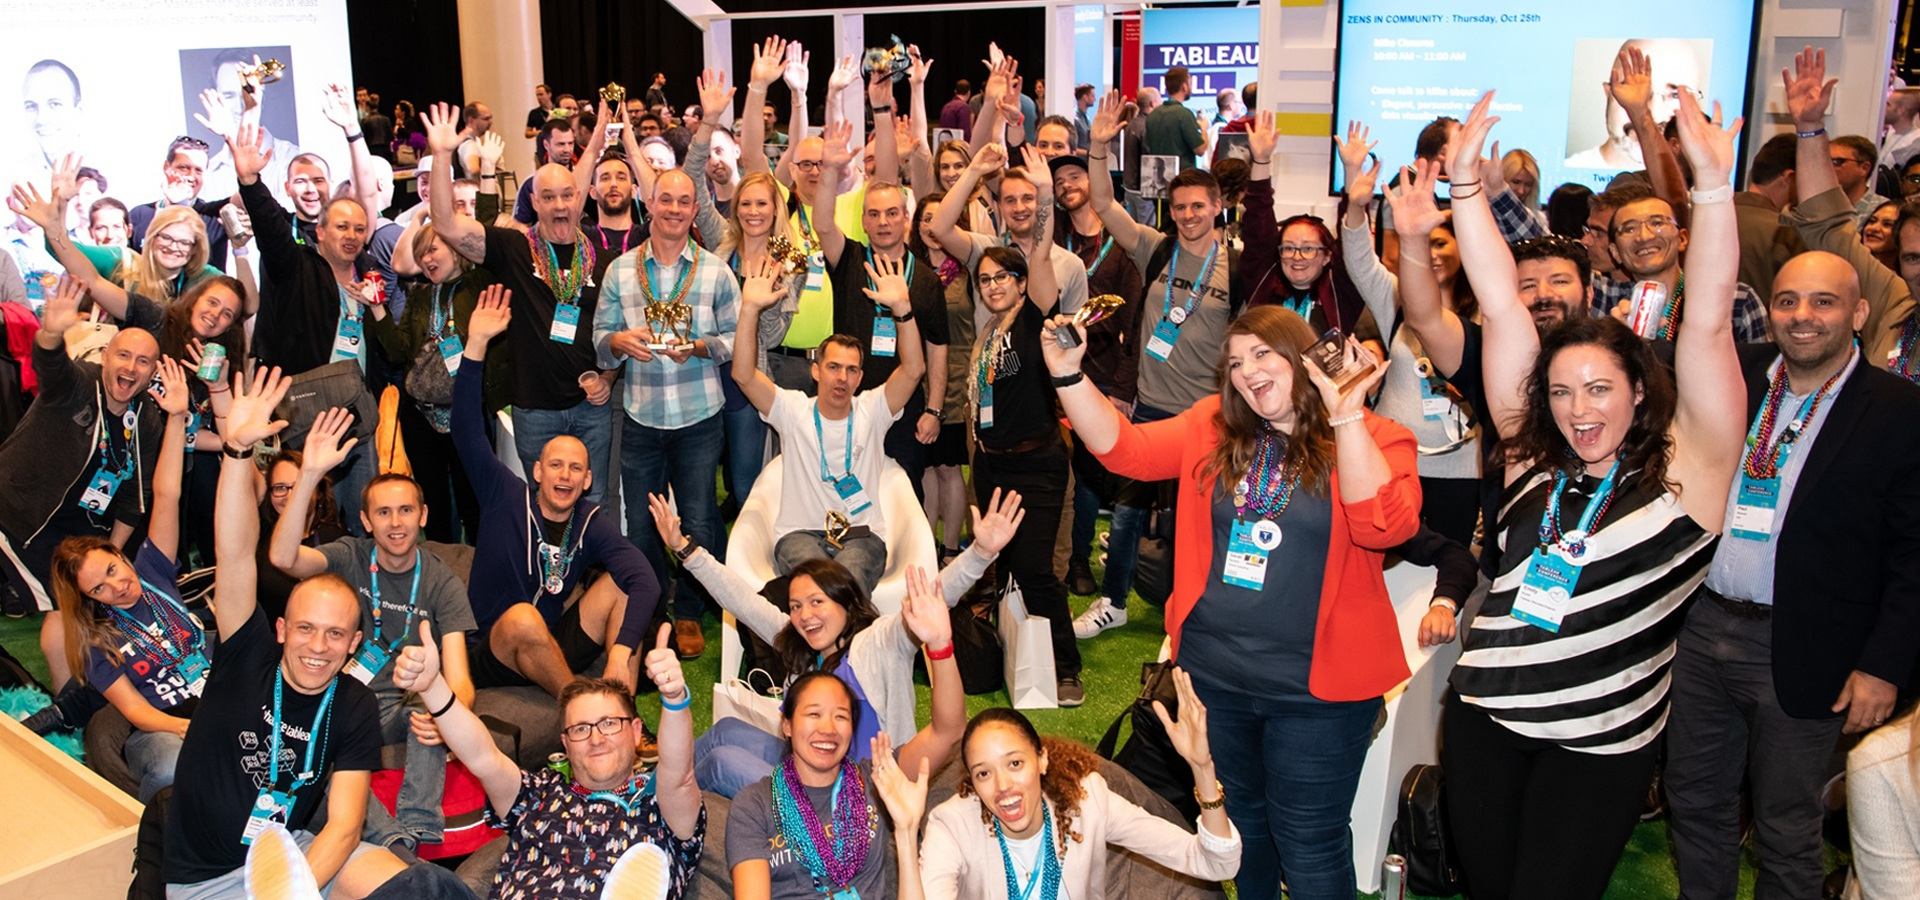 Members of the Tableau Community at Tableau Conference 2018